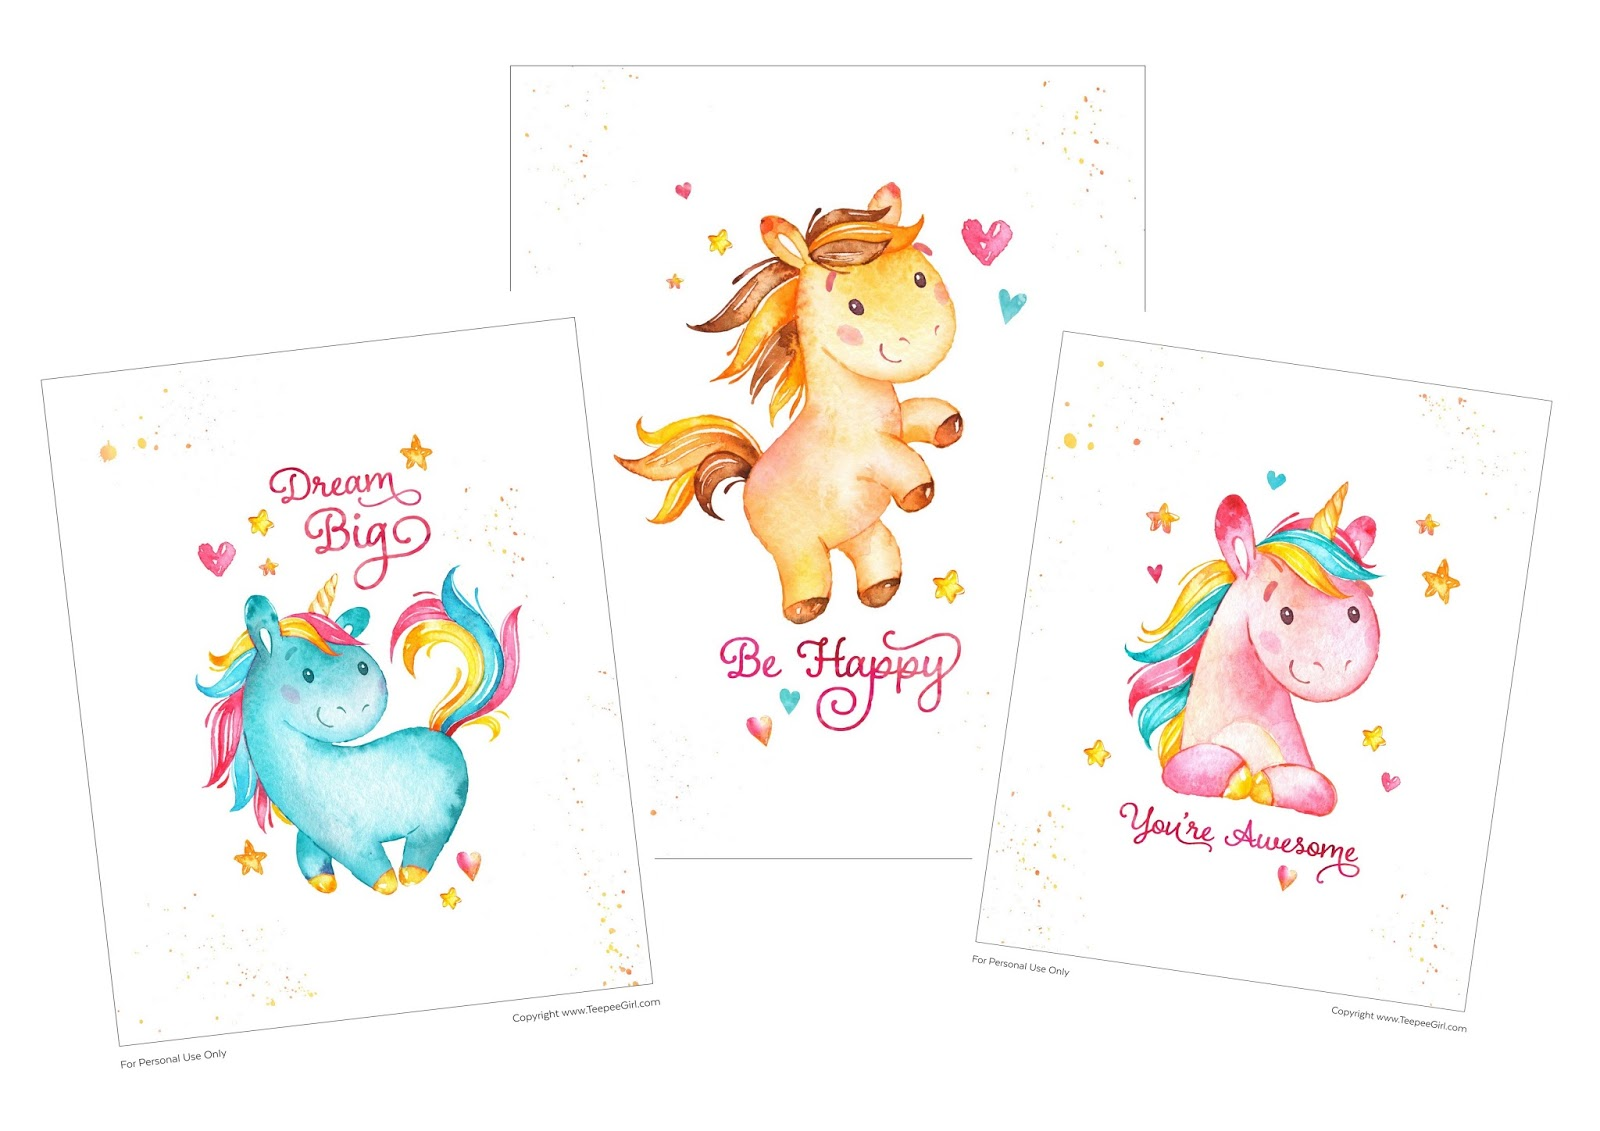 picture relating to Free Unicorn Printable named Totally free Printable Unicorn Posters. - Oh My Fiesta! within english